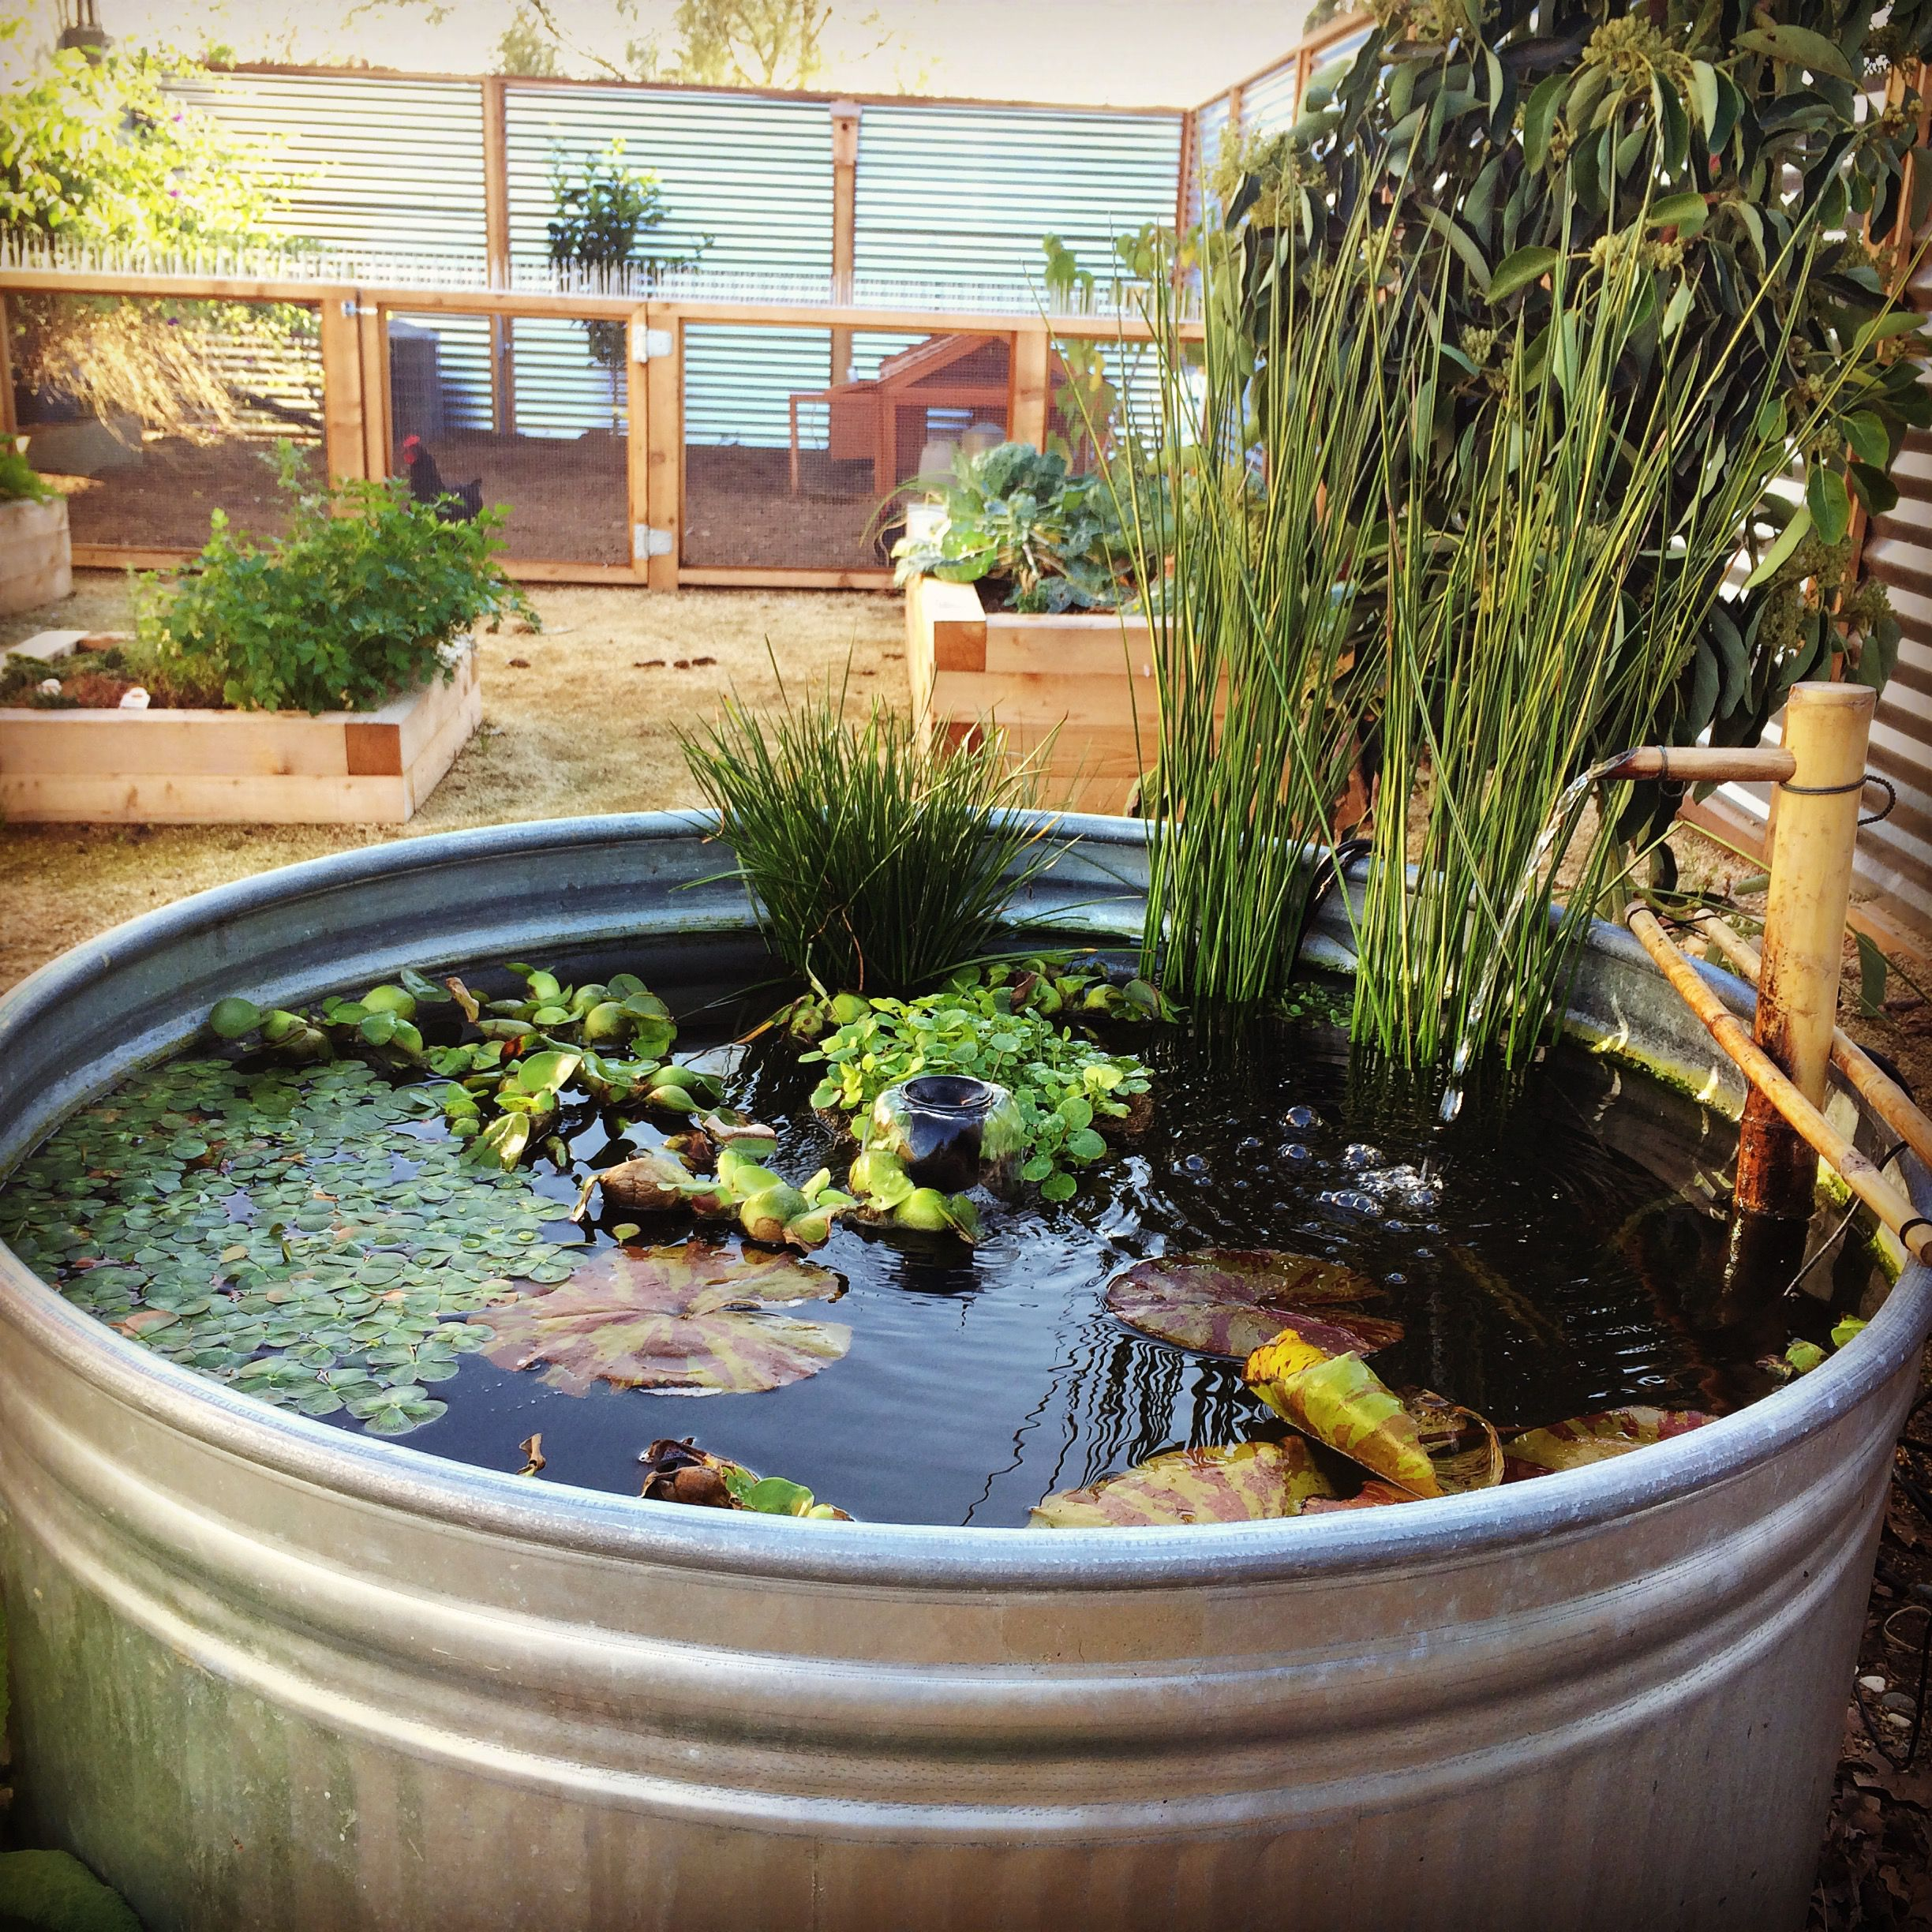 Koi Pond Made From 165 Gallon Galvanized Tub With A 24inch Bamboo